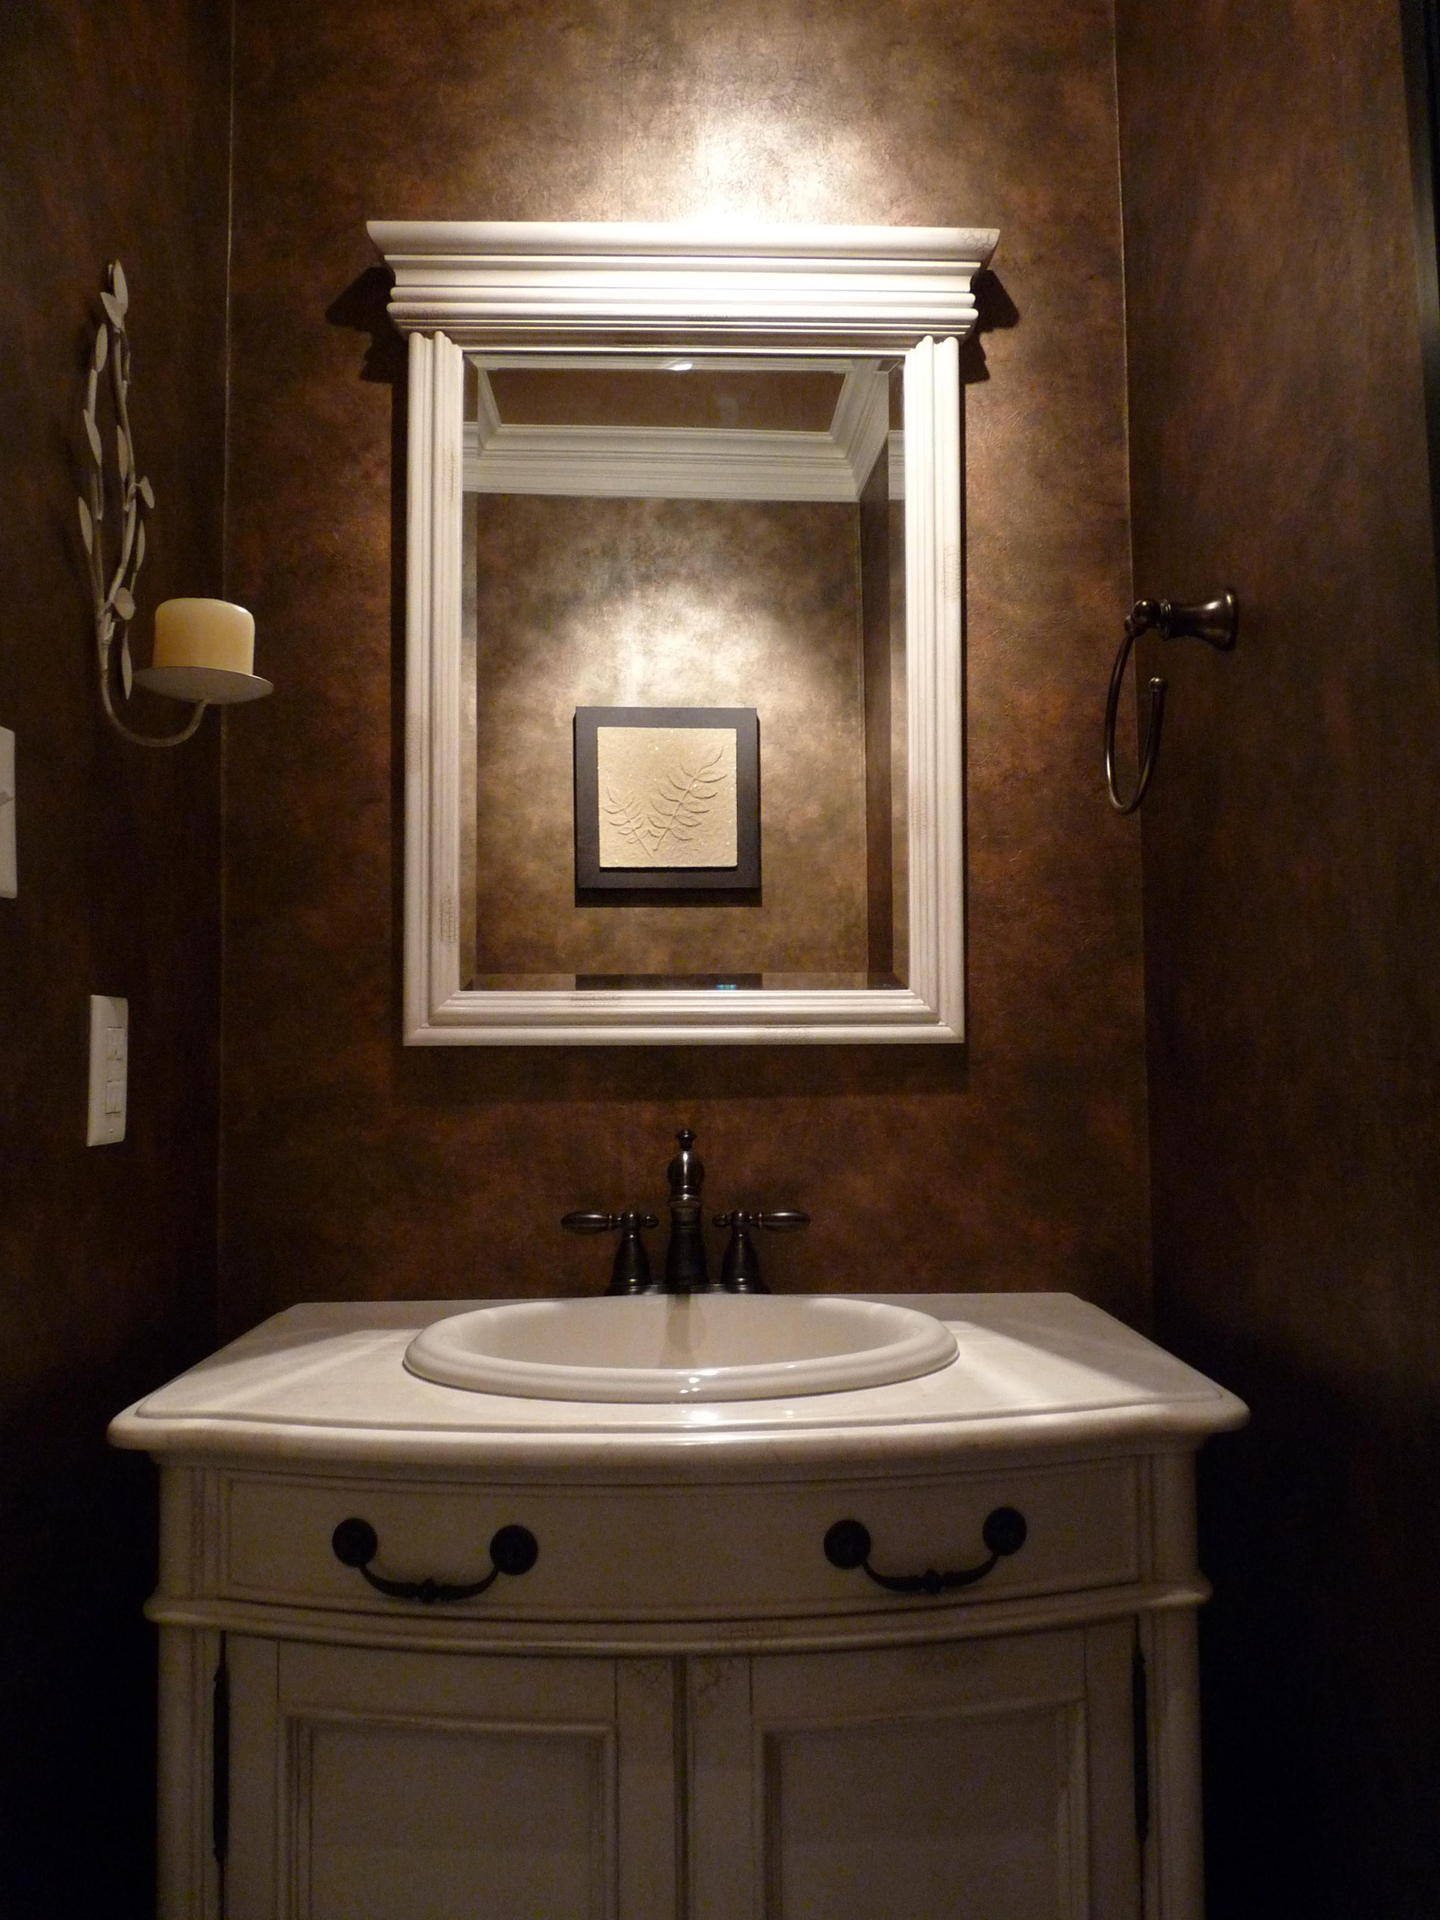 Free Download Wallpapers For Bathroom 2015 Grasscloth